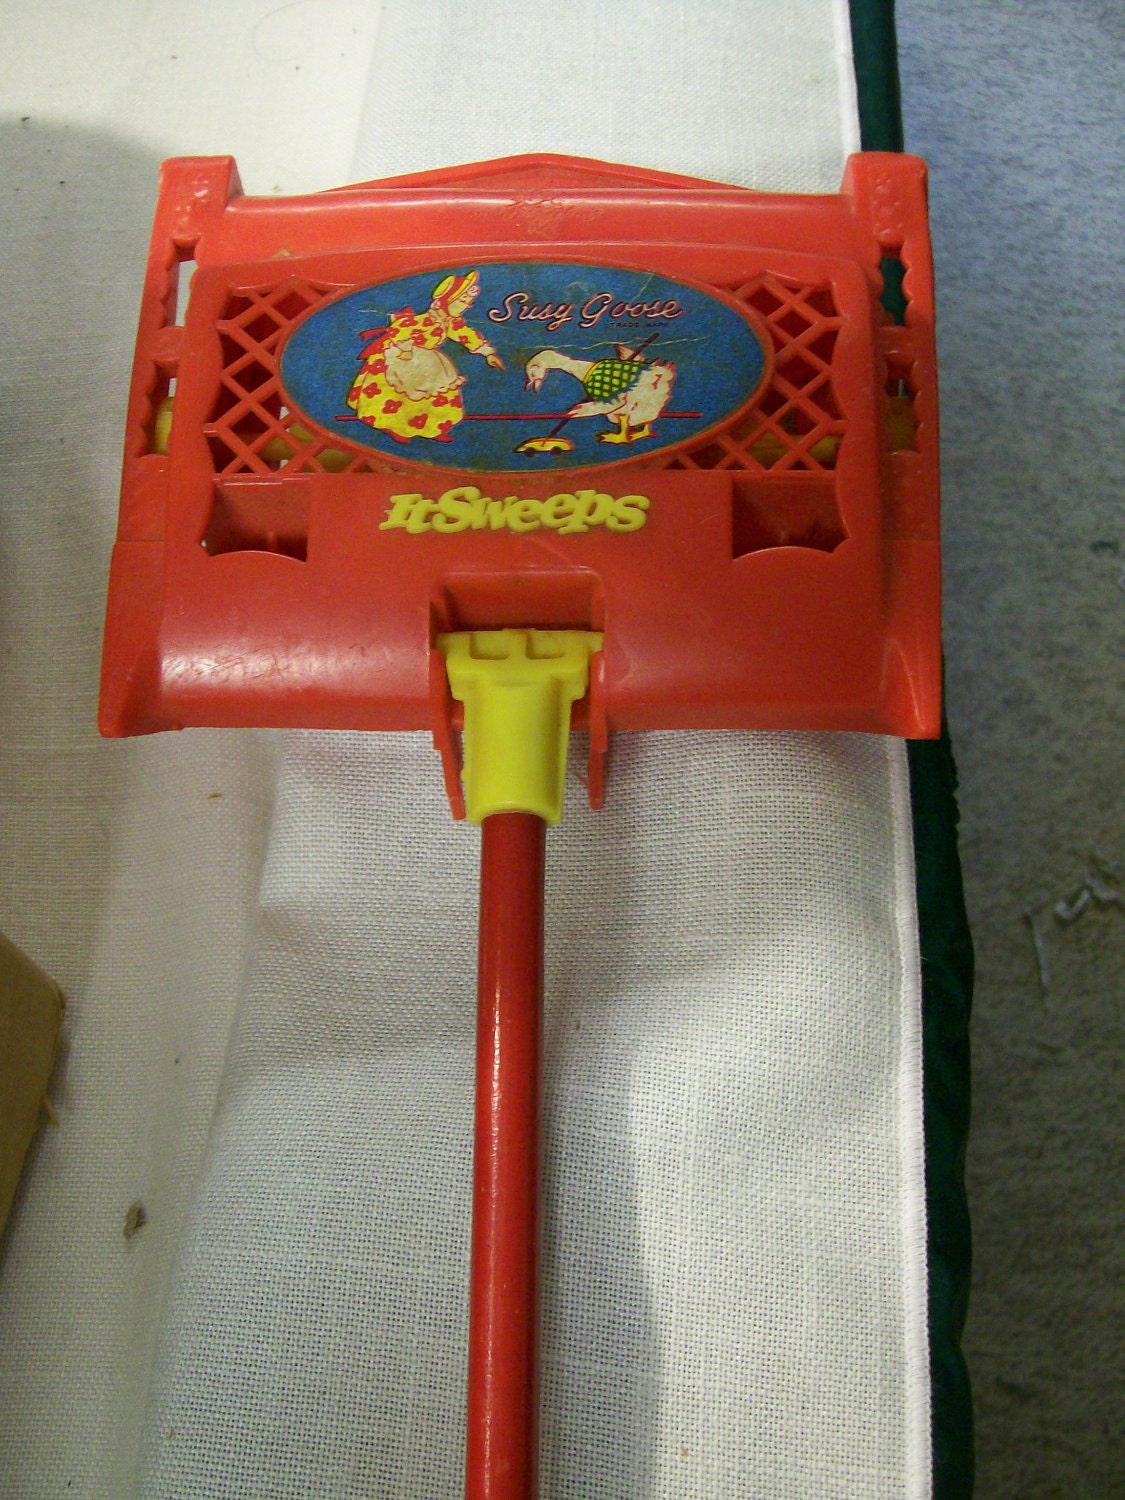 Vintage Childs Toy Carpet Sweeper From Susy Goose Toys 1950s